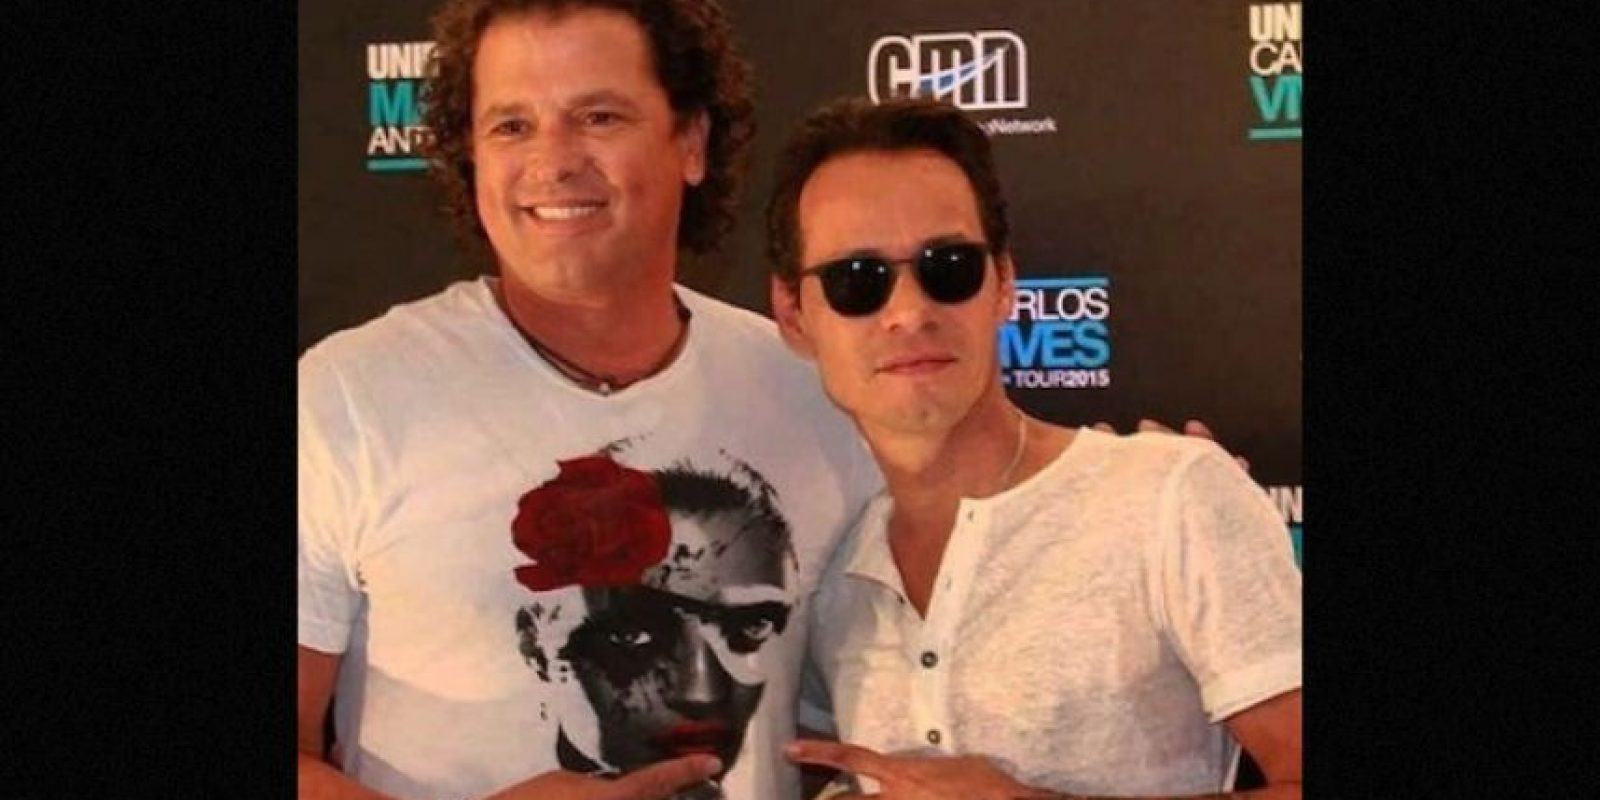 Carlos Vives y Marc Anthony Foto:Instagram/marcanthony